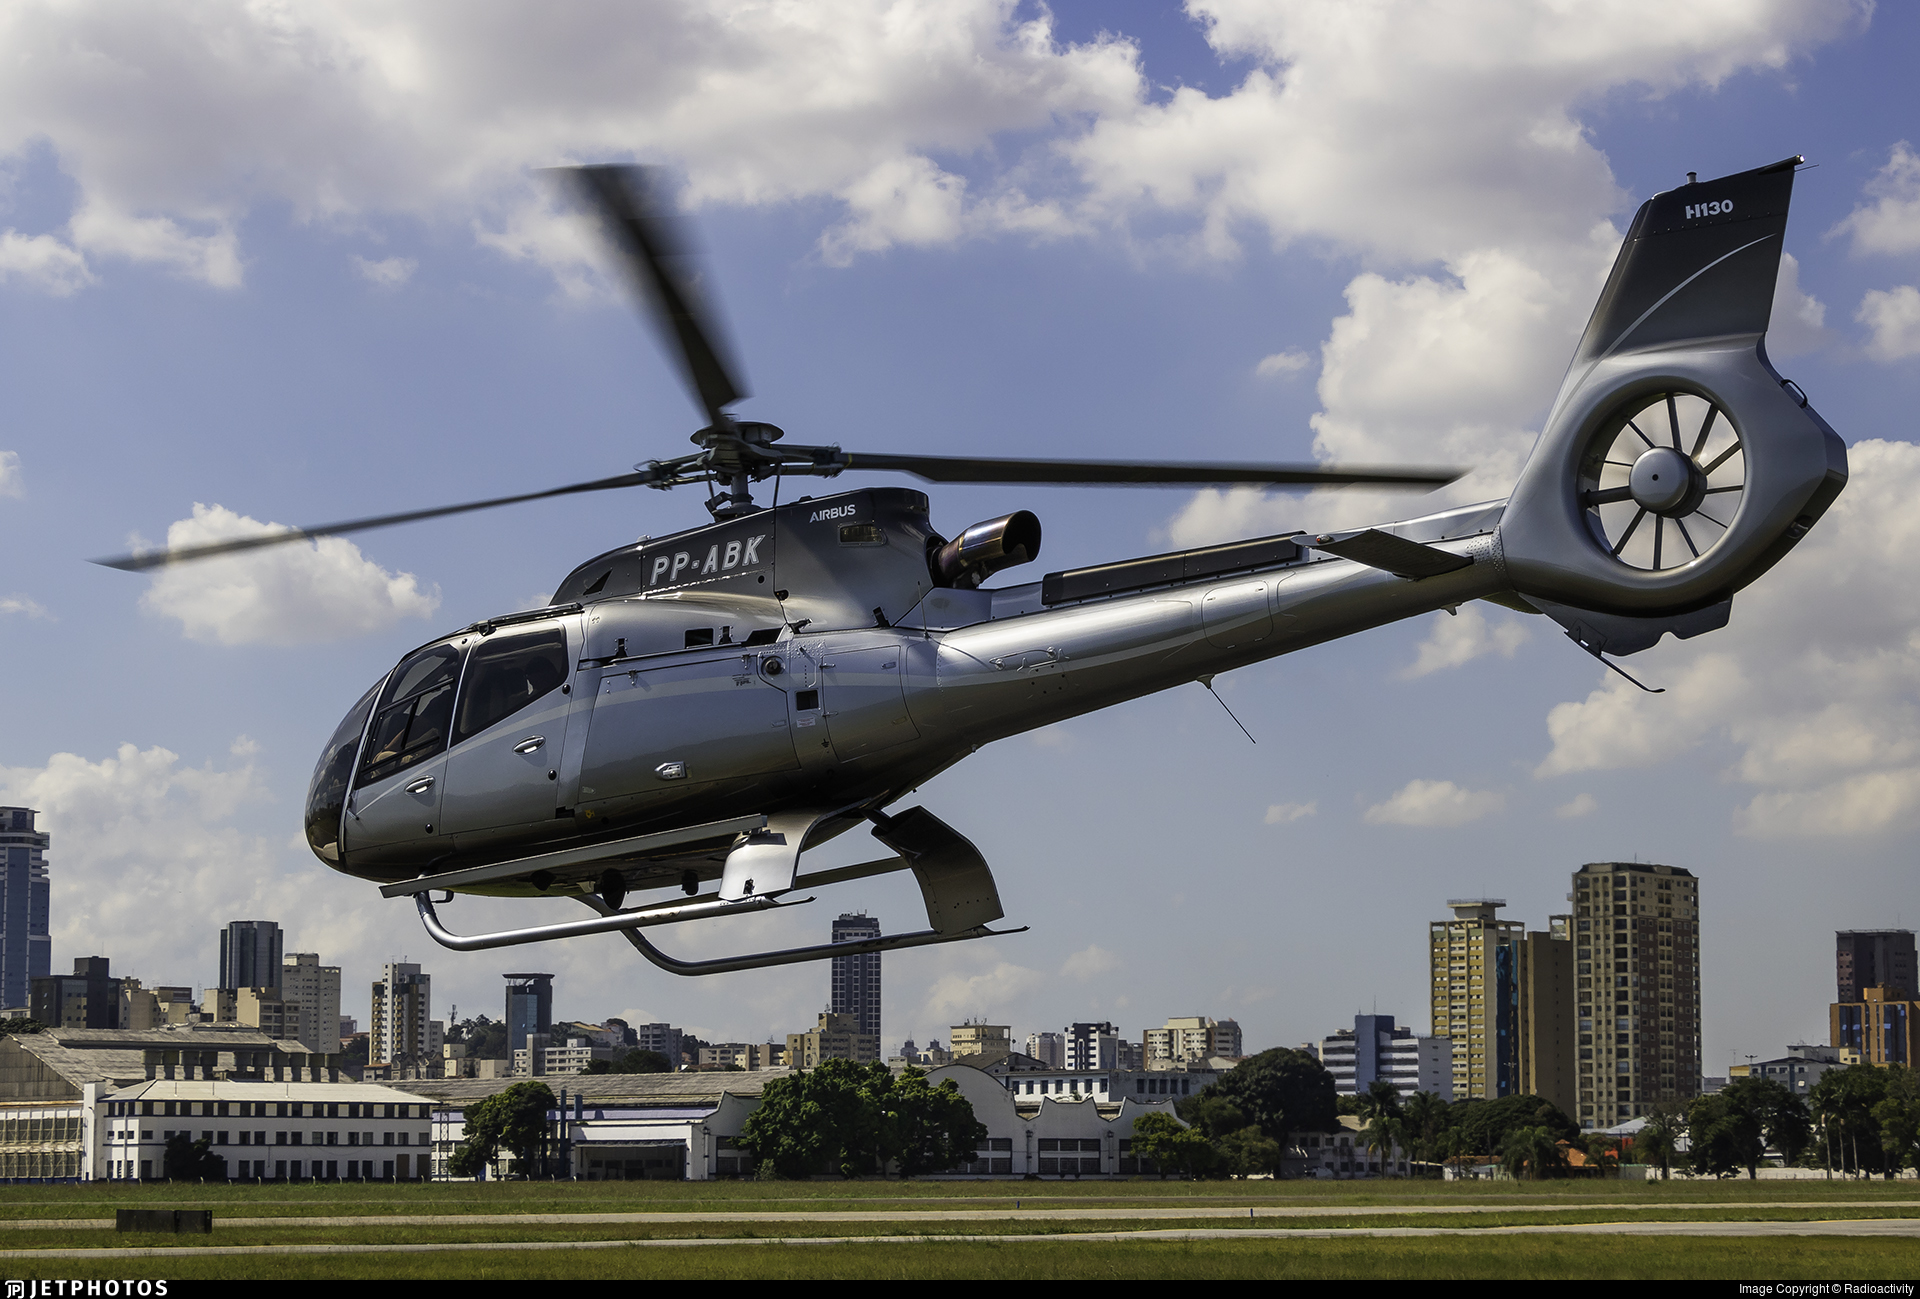 PP-ABK - Airbus Helicopters H130 T2 - Private